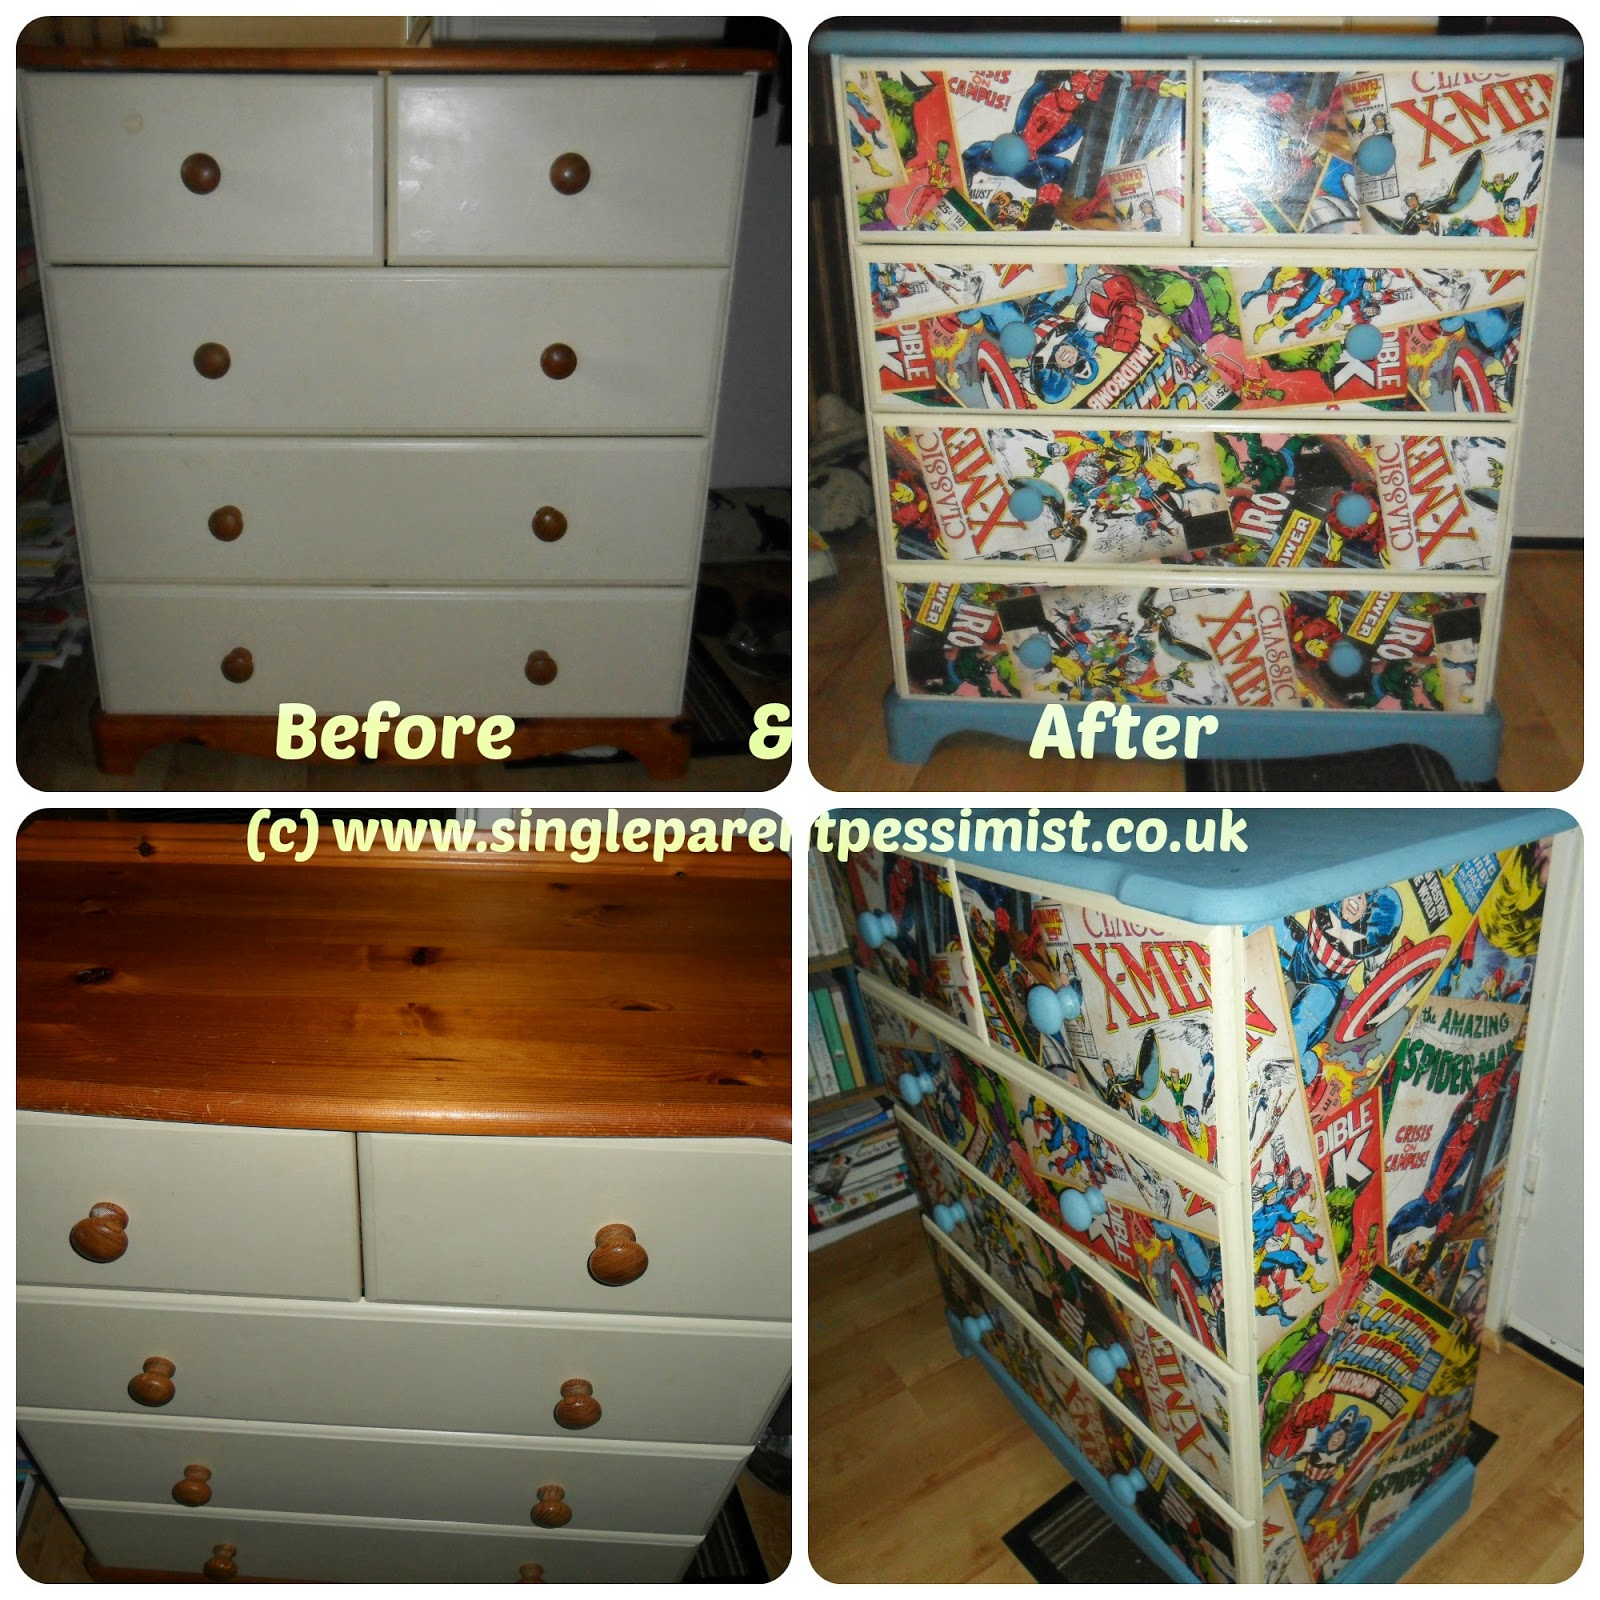 Marvel Bedroom Accessories Dc Superhero Dresser For Our Sons Super Hero Themed Nursery